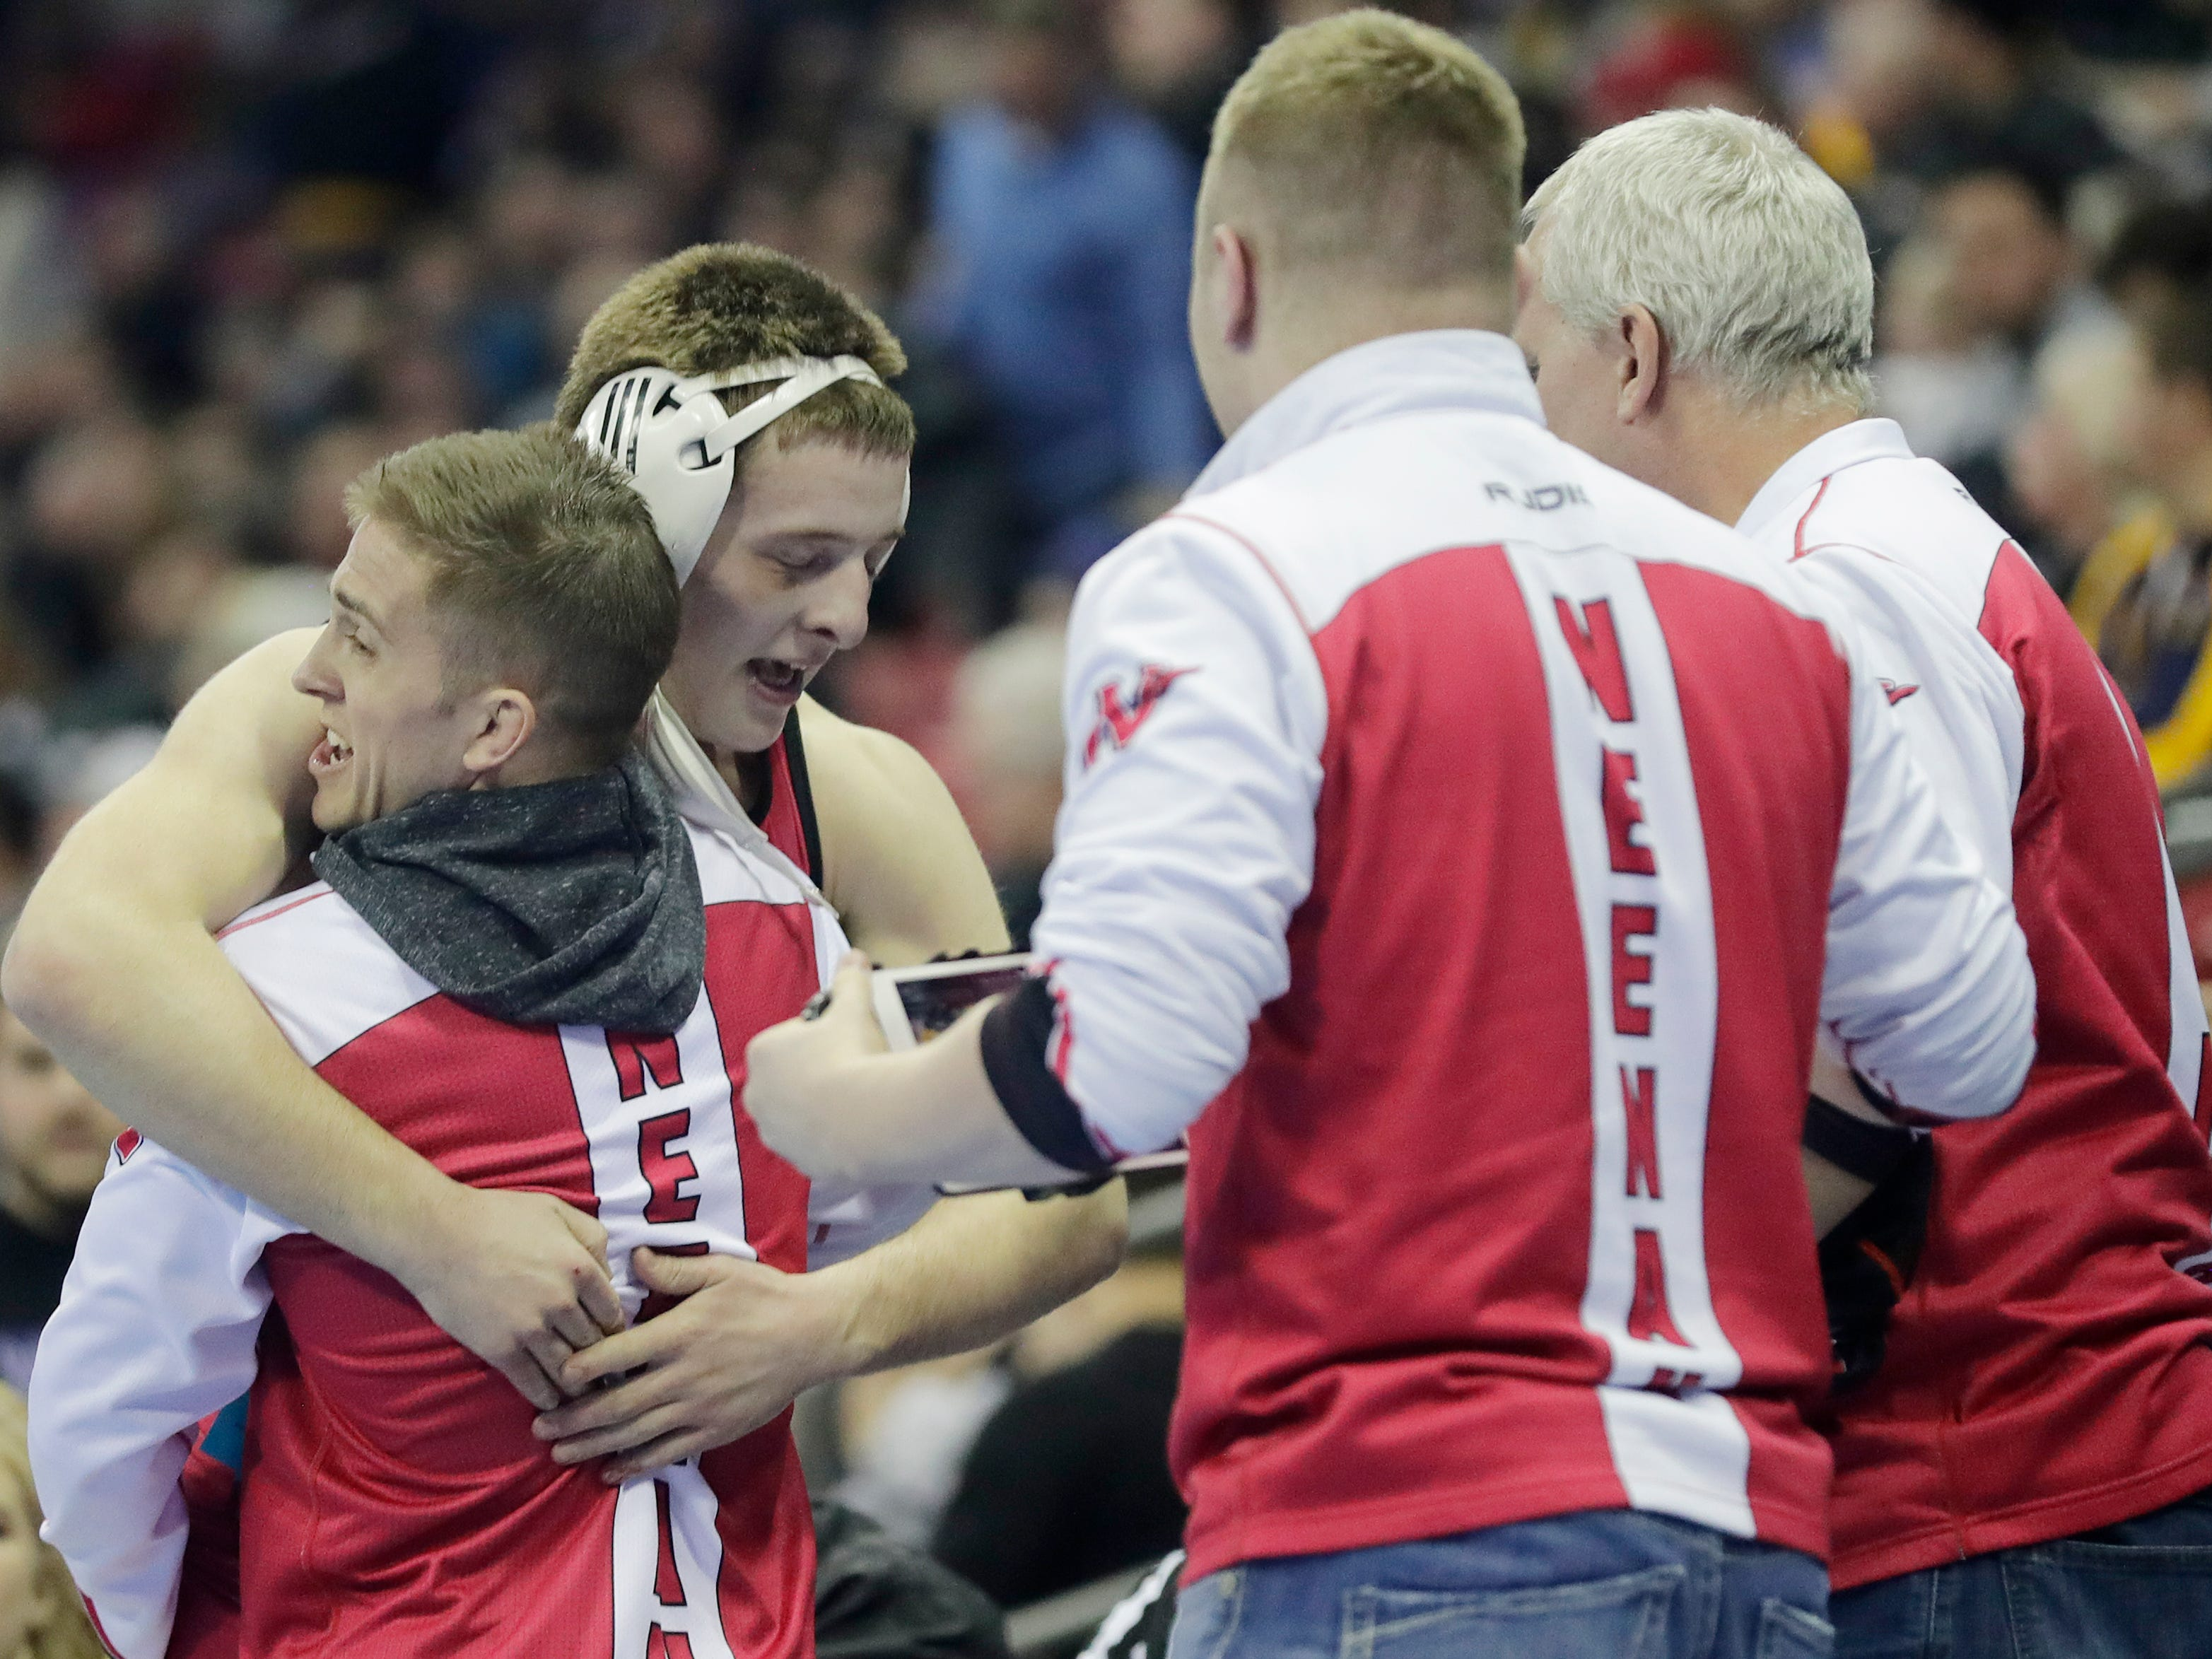 Neenah's Isaiah McCormick reacts after winning a Division 1 170-pound quarterfinal match at the WIAA state individual wrestling tournament at the Kohl Center on Thursday, February 21, 2019 in Madison, Wis.